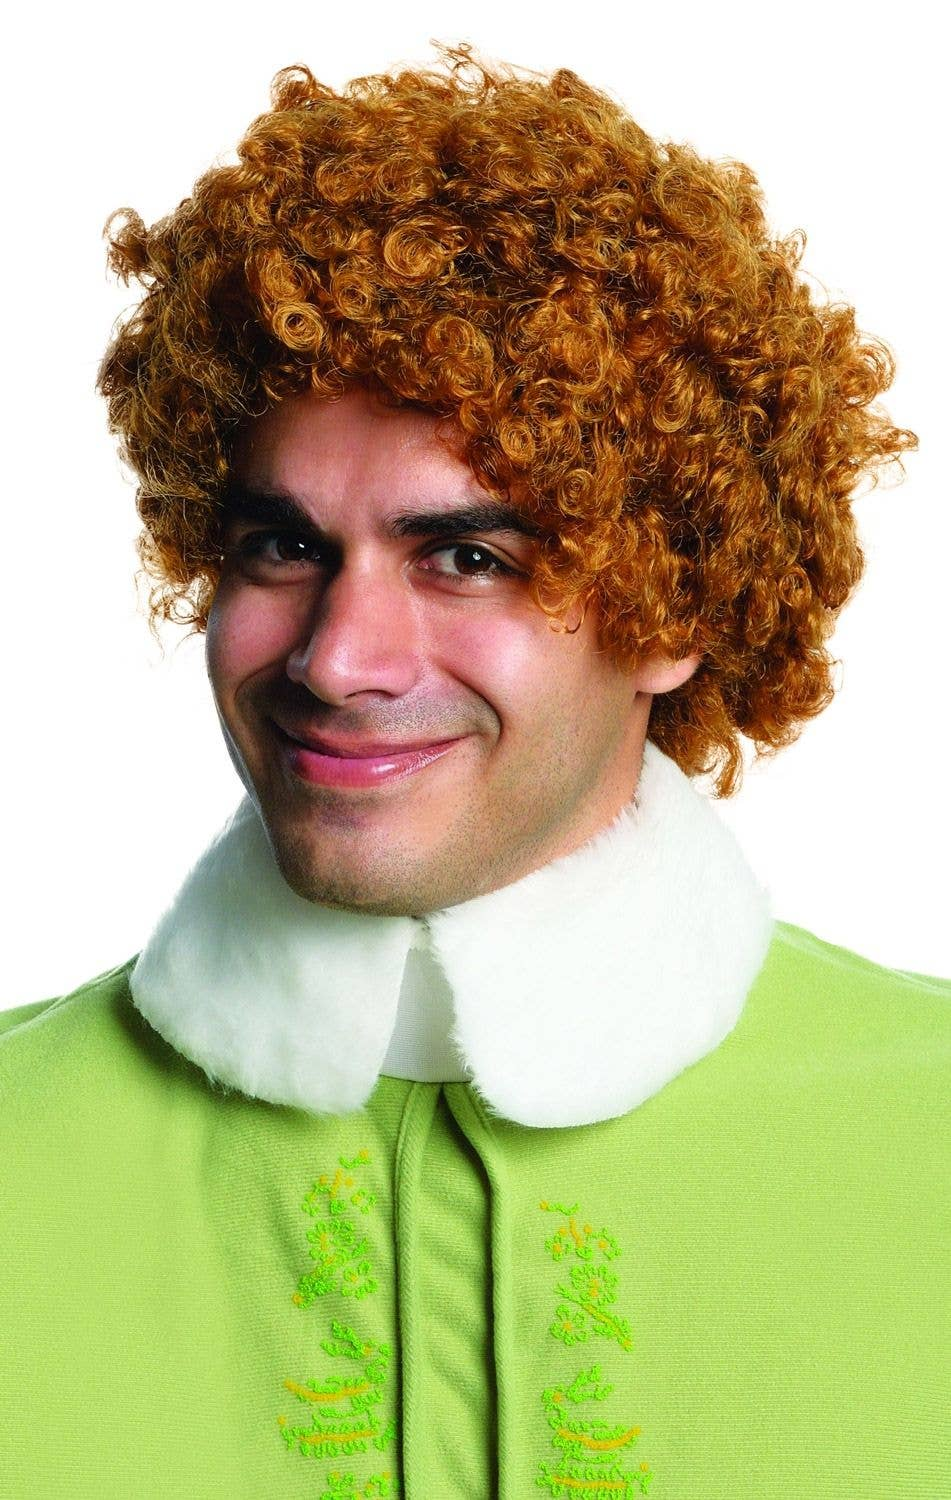 Buddy The Elf Men S Brown Wig Men S Curly Brown Elf Costume Wig